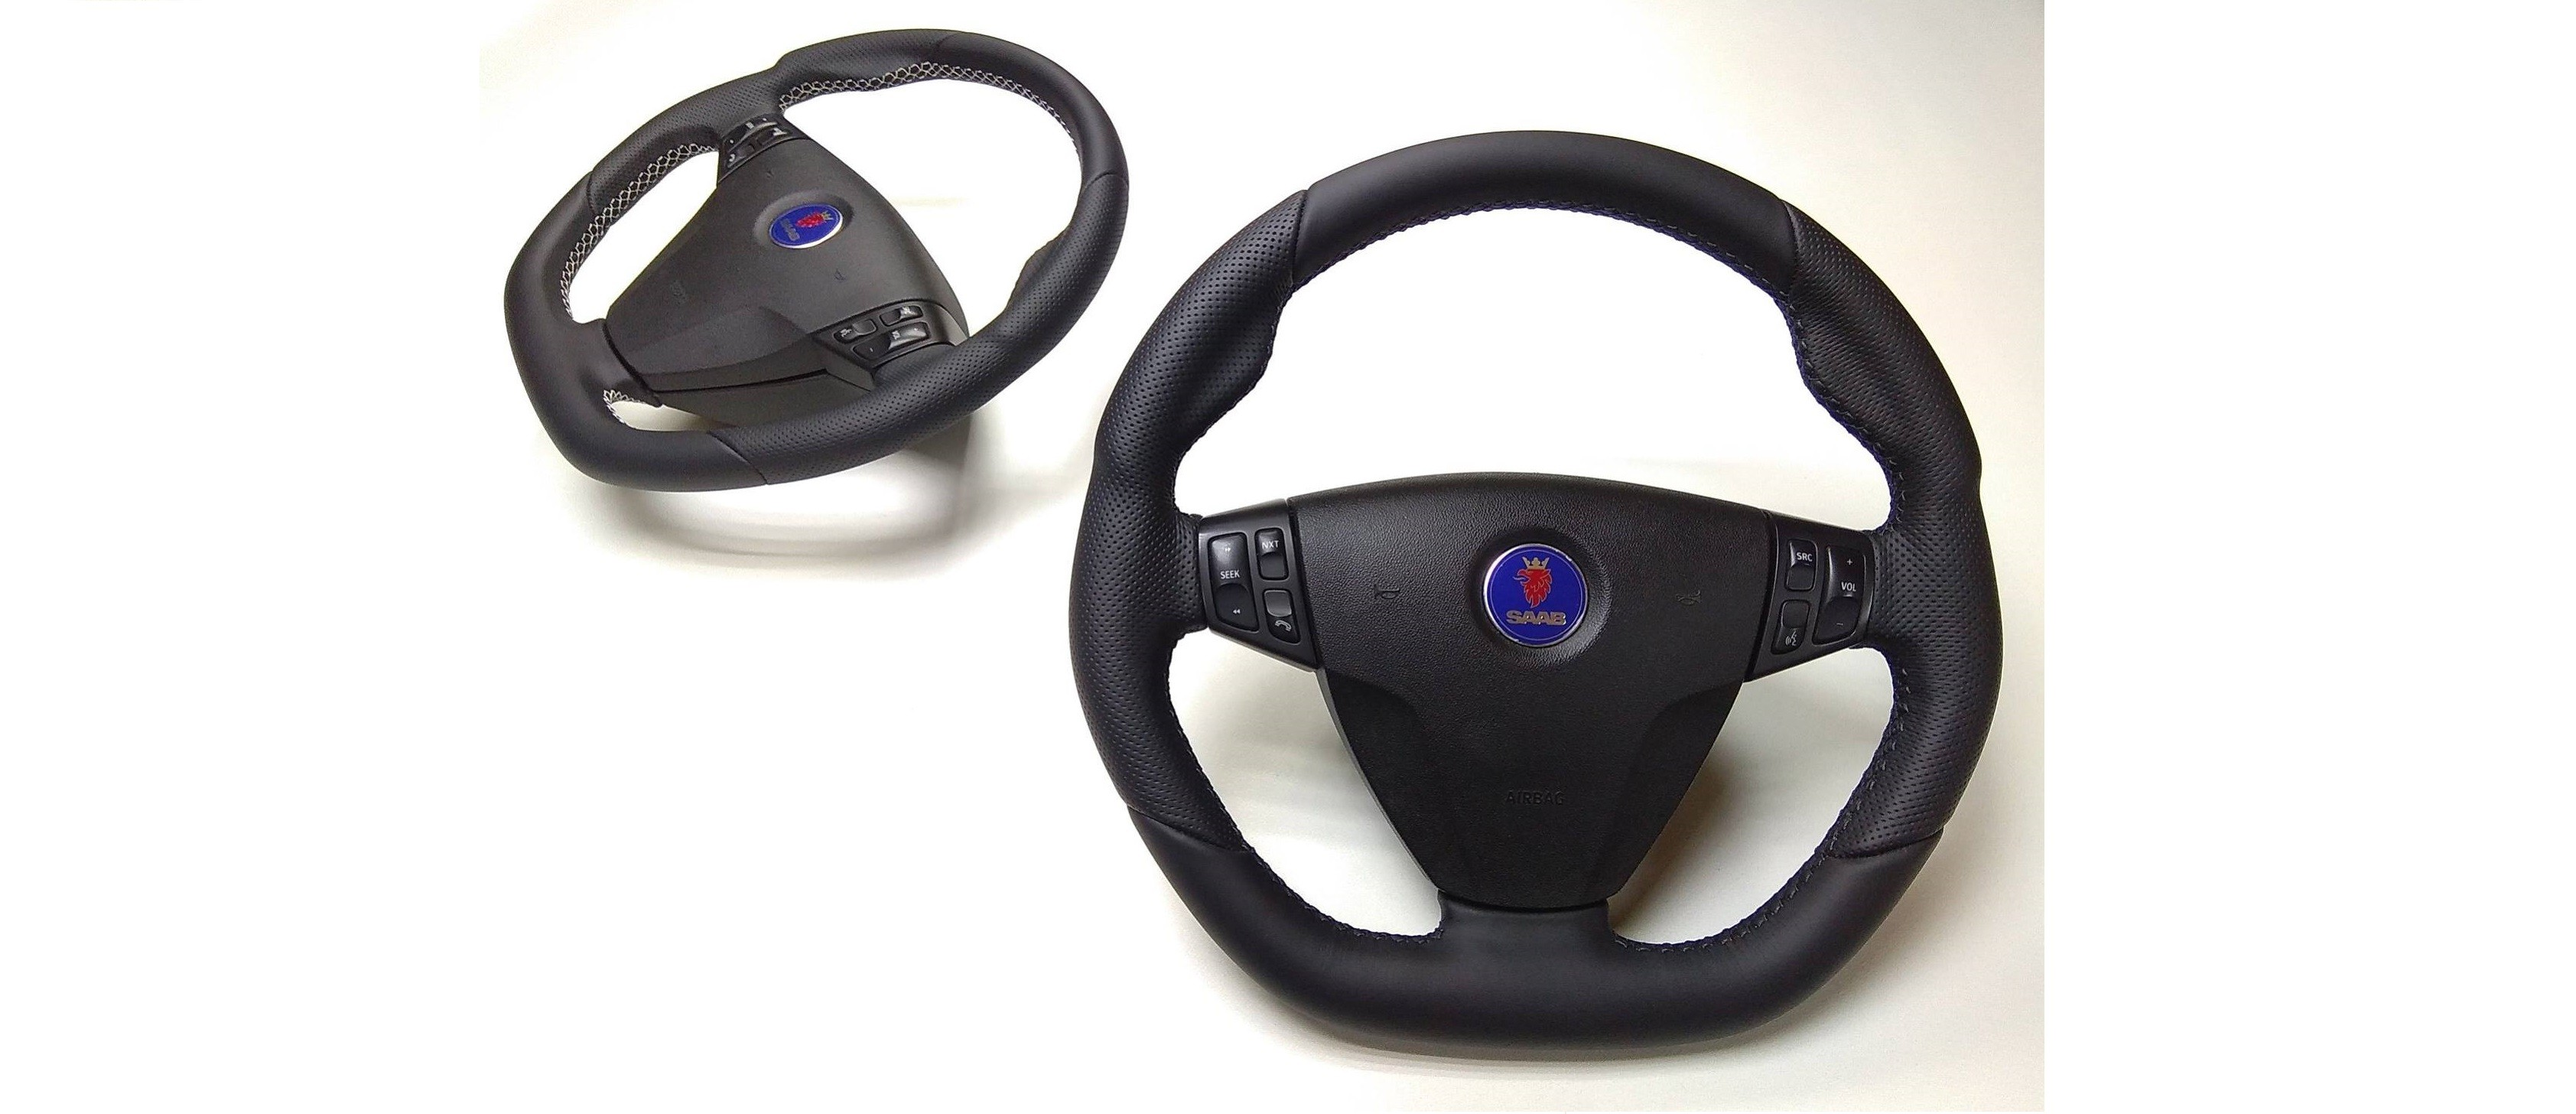 SAAB 9-3 steering wheels